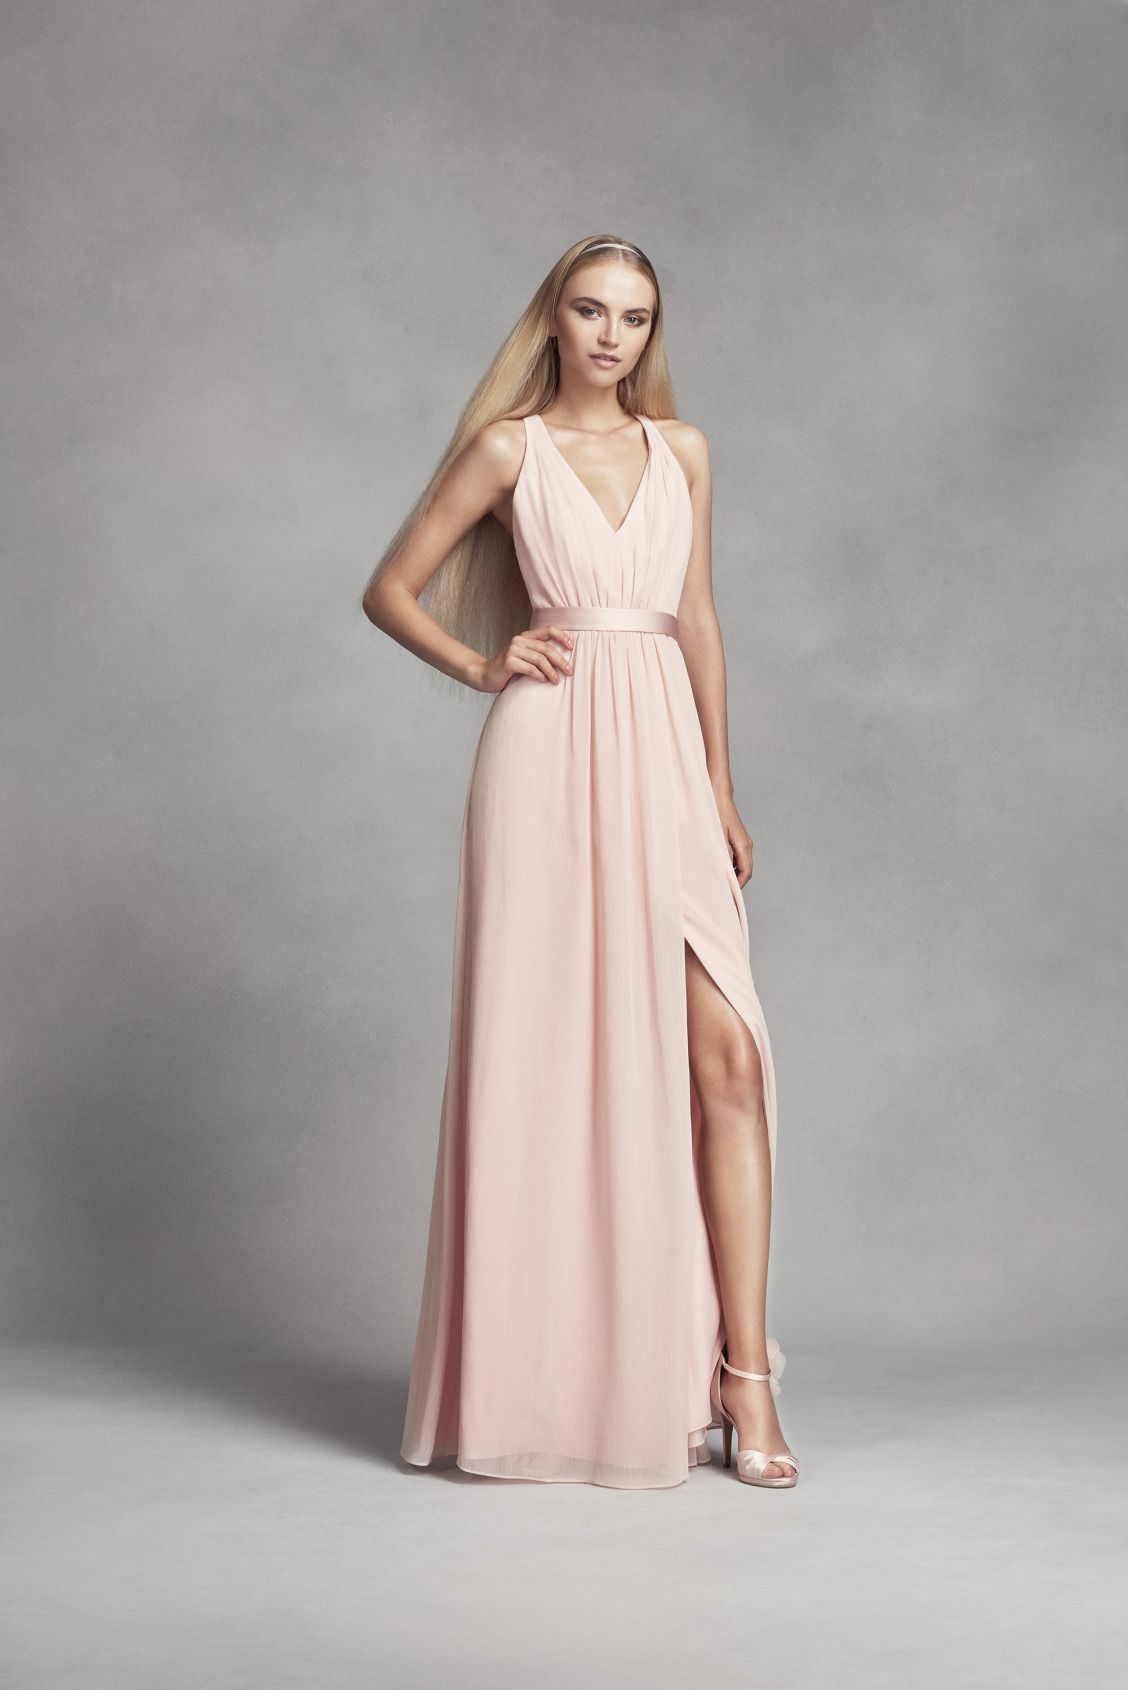 Long Petal Pink Halter Chiffon Dress with Low Crisscross Back WHITE ...